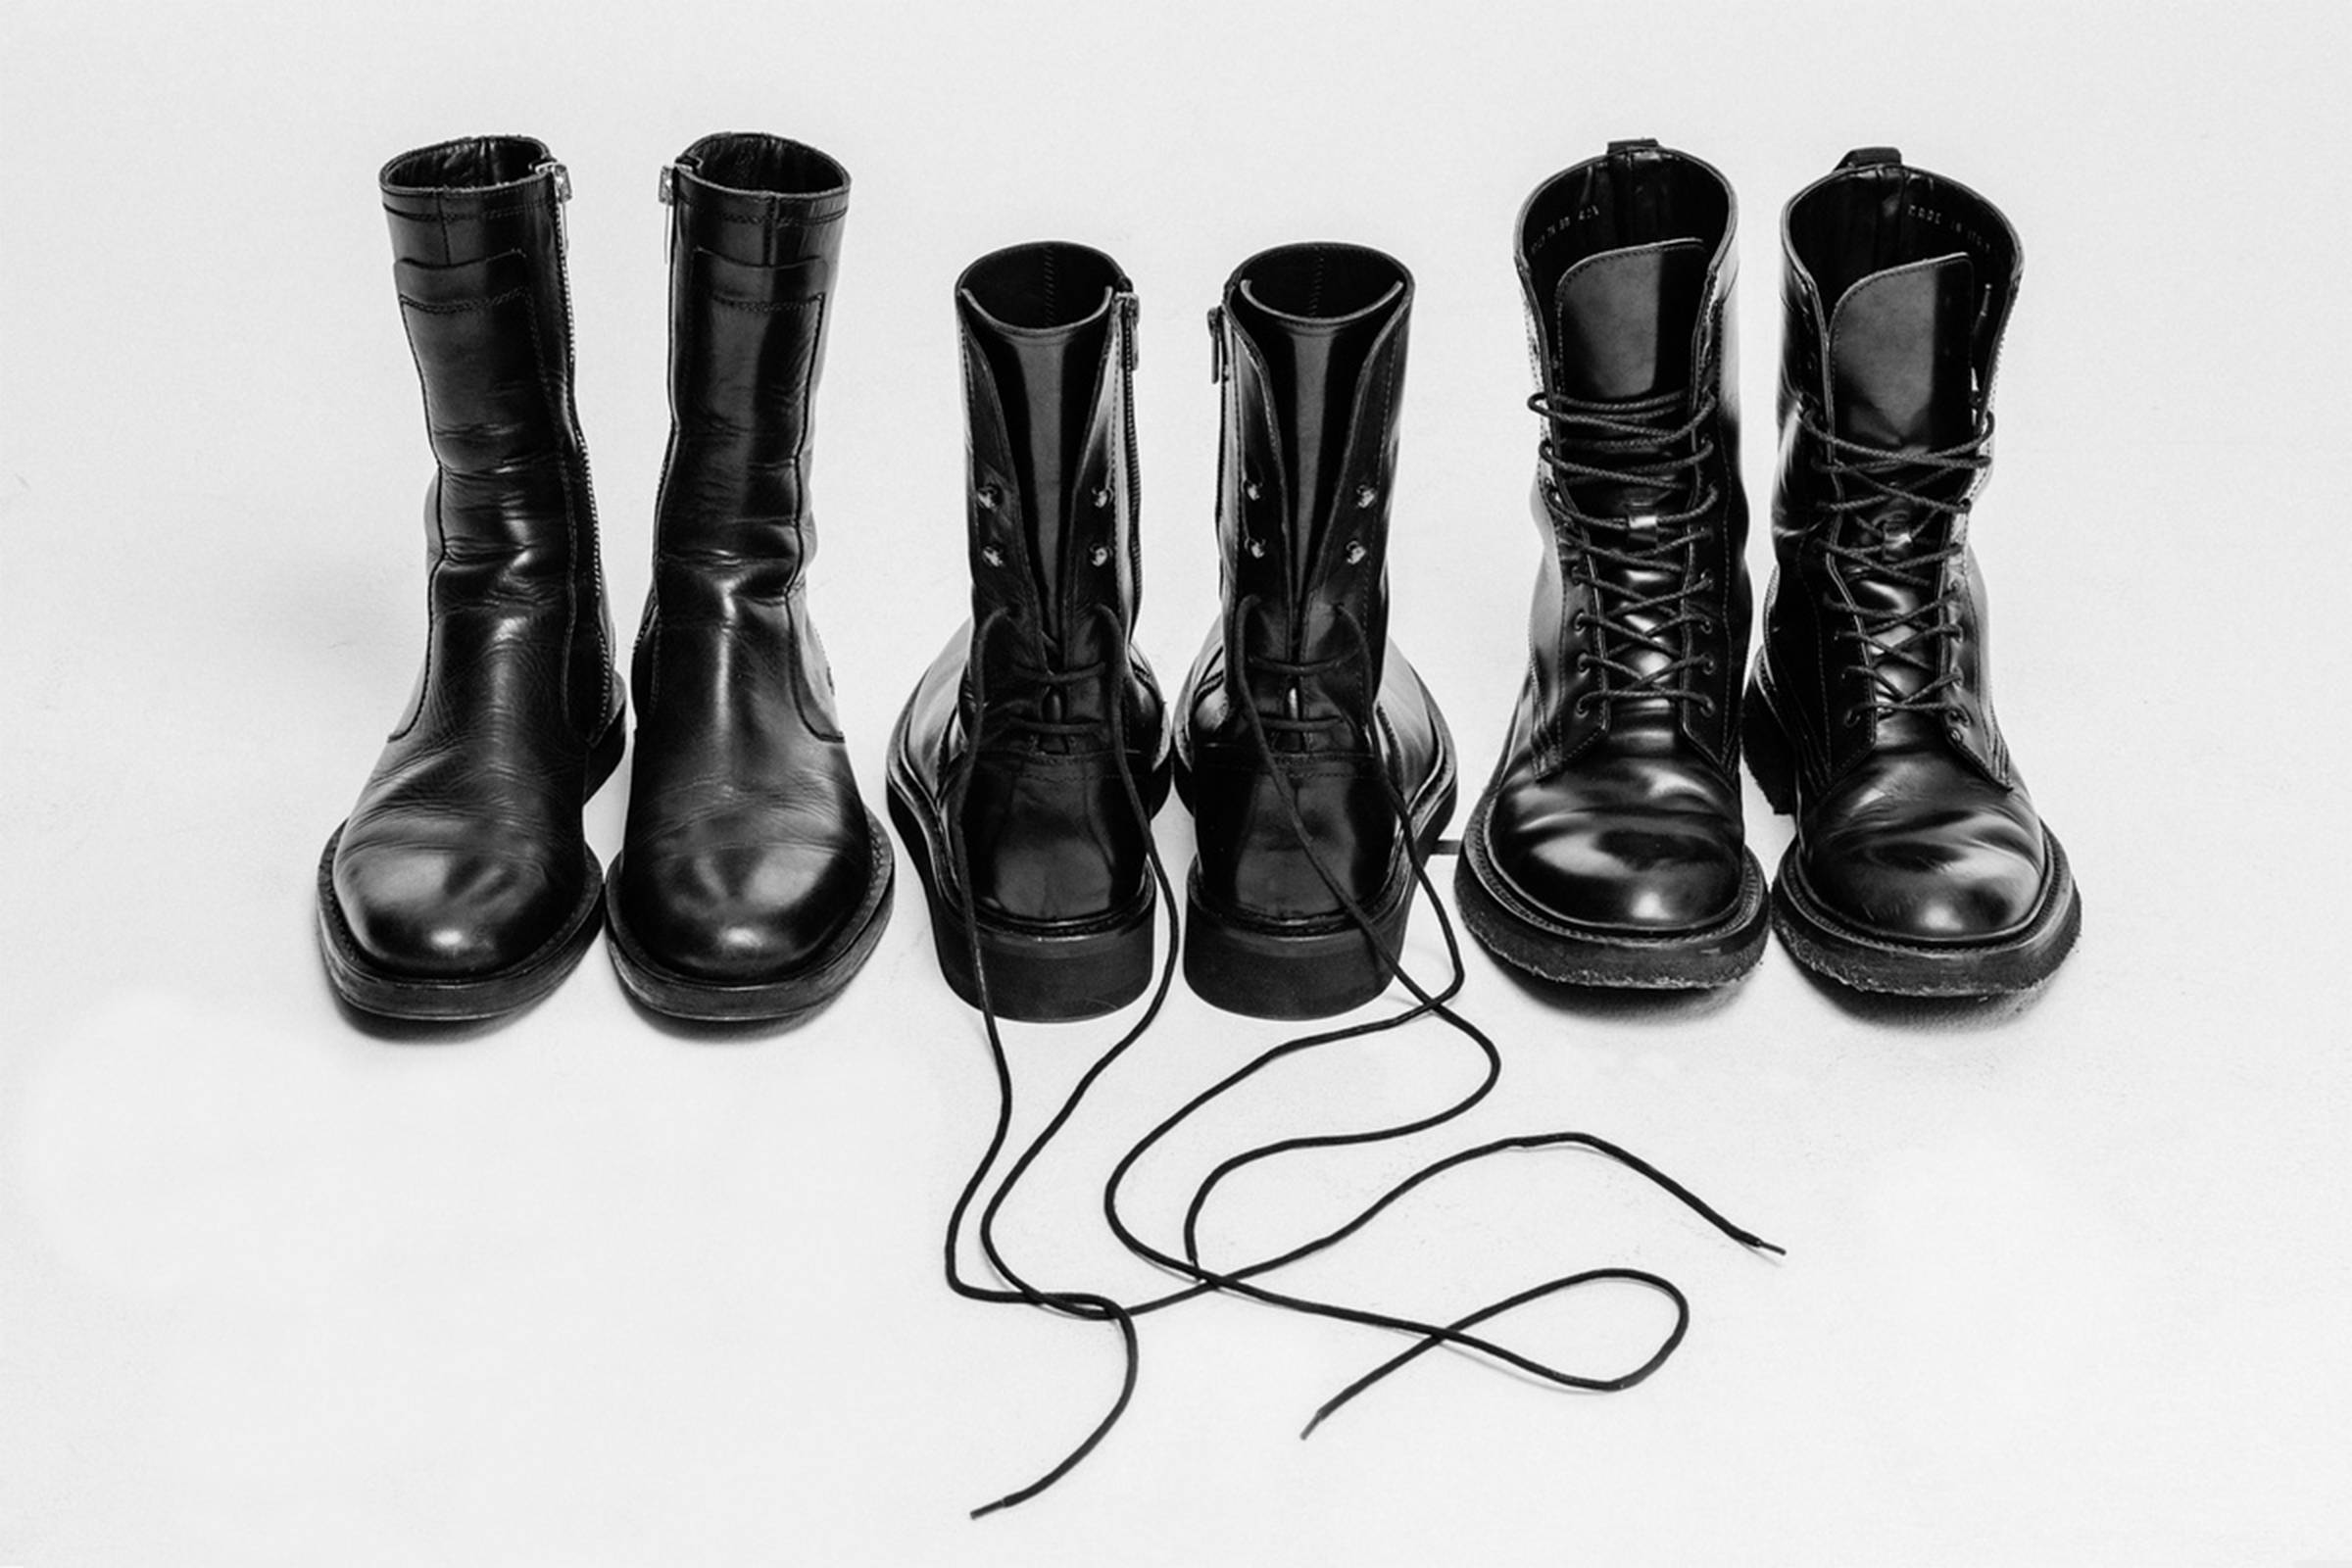 b1b72635521 Our 10 Favorite Designer Boots - Best Designer Boots